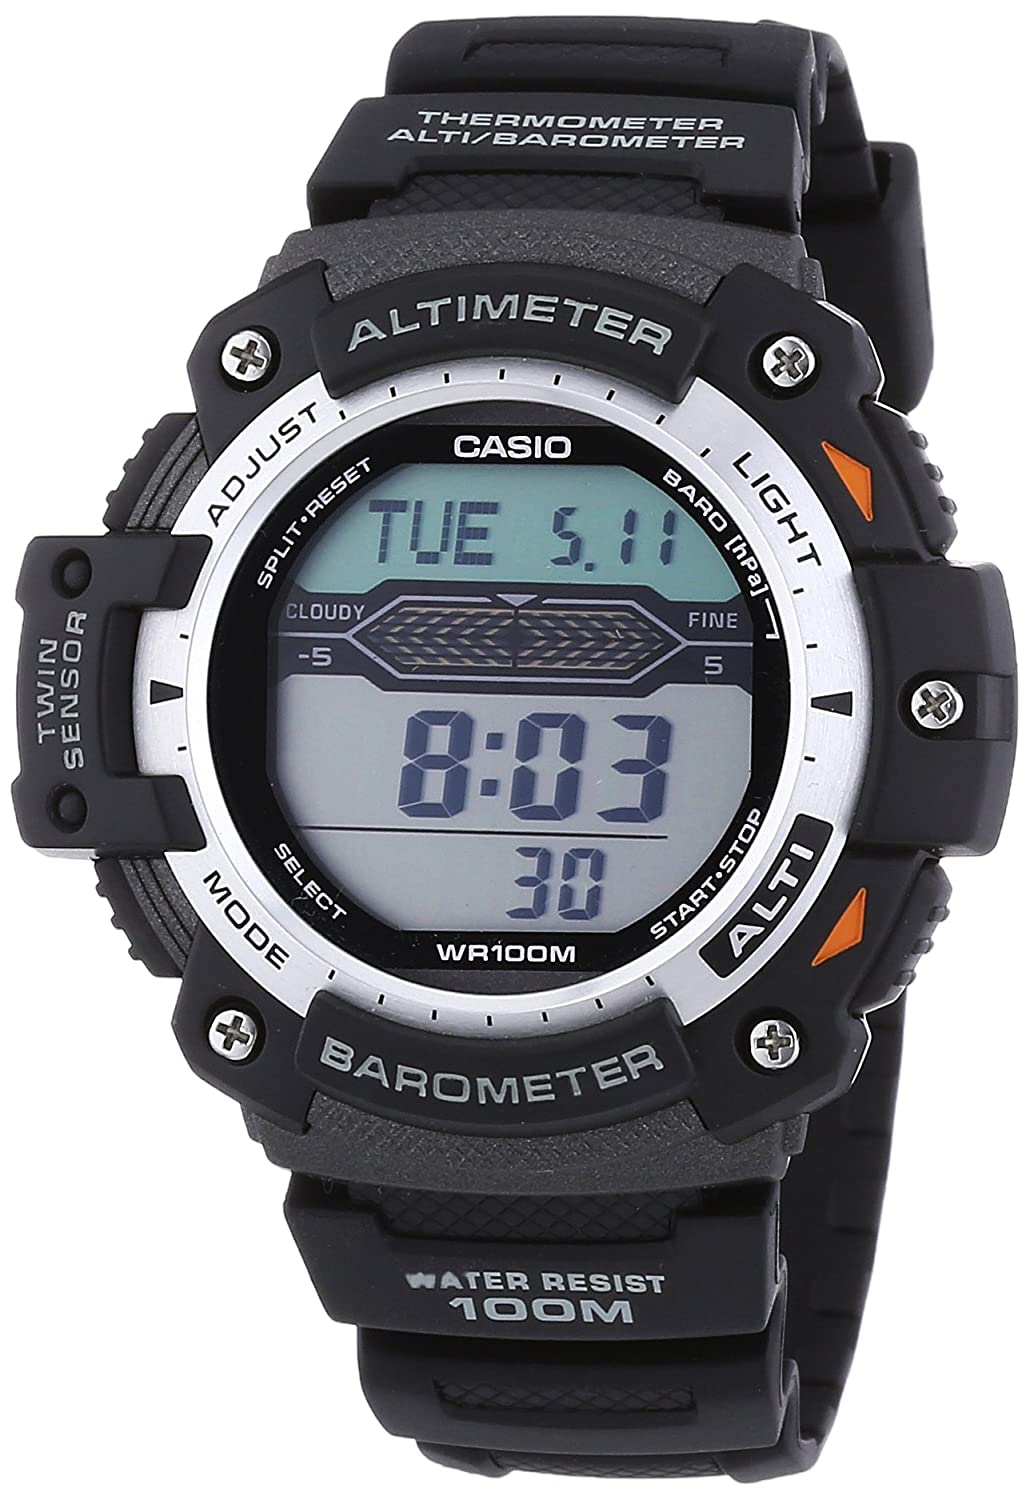 altimeter from compass watches digital more wrightbros s bros photos collection wright altitude sporty watch